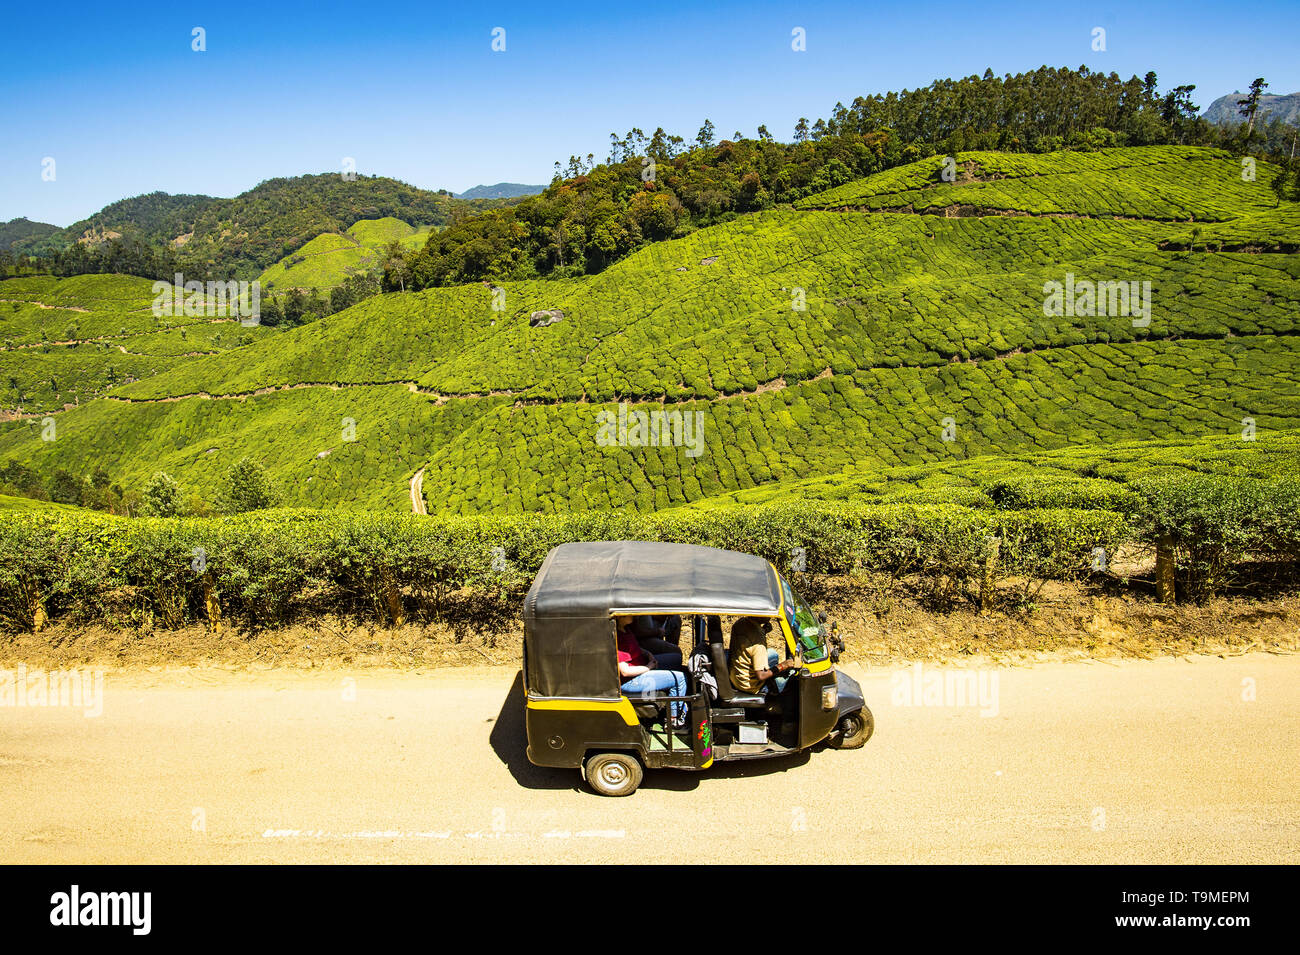 An auto rickshaw (Tuc Tuc or Tuk Tuk) with tourists on board is traveling on the Munnar hills. - Stock Image